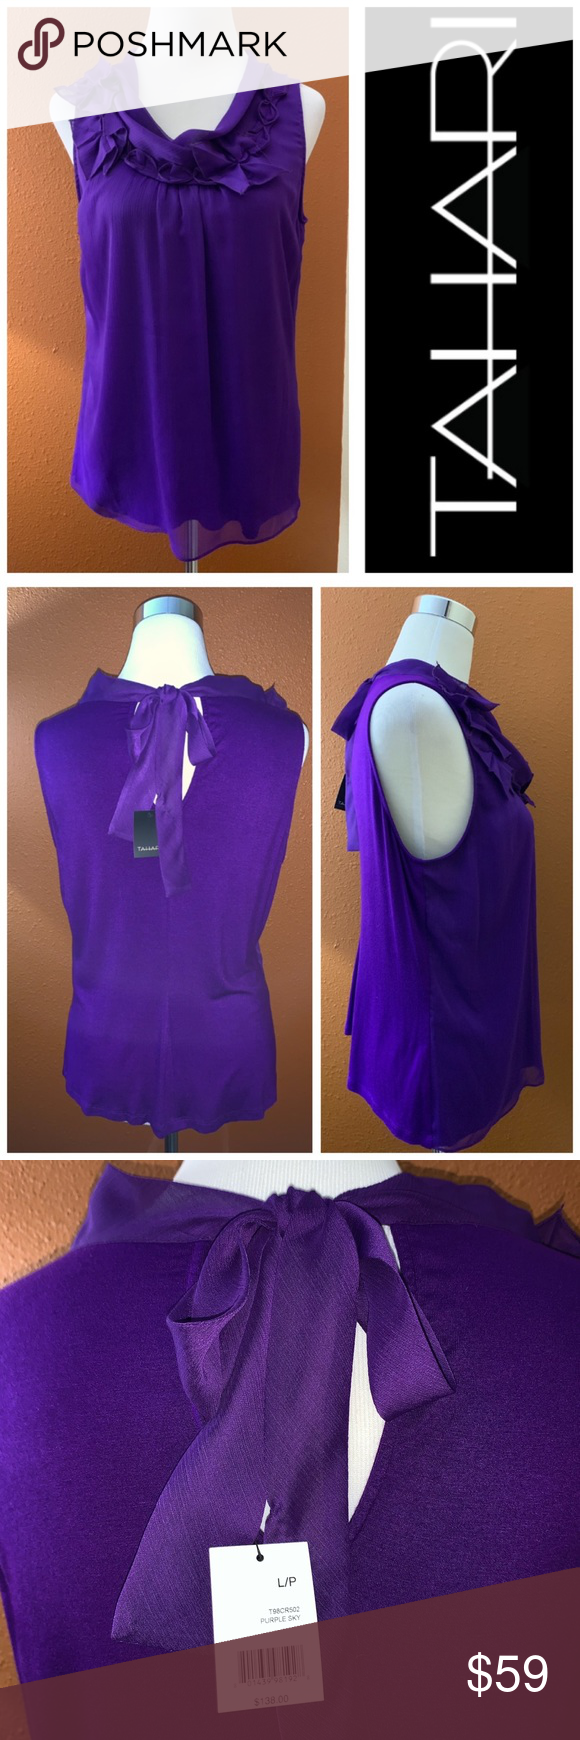 TAHARI Purple Blouse with Embellishments ▫️#0131 ▫️NWT ▫️Ties in back ▫️Lined ▫️Size Large Petite  ▫️Orig. $138 Tahari Tops Blouses